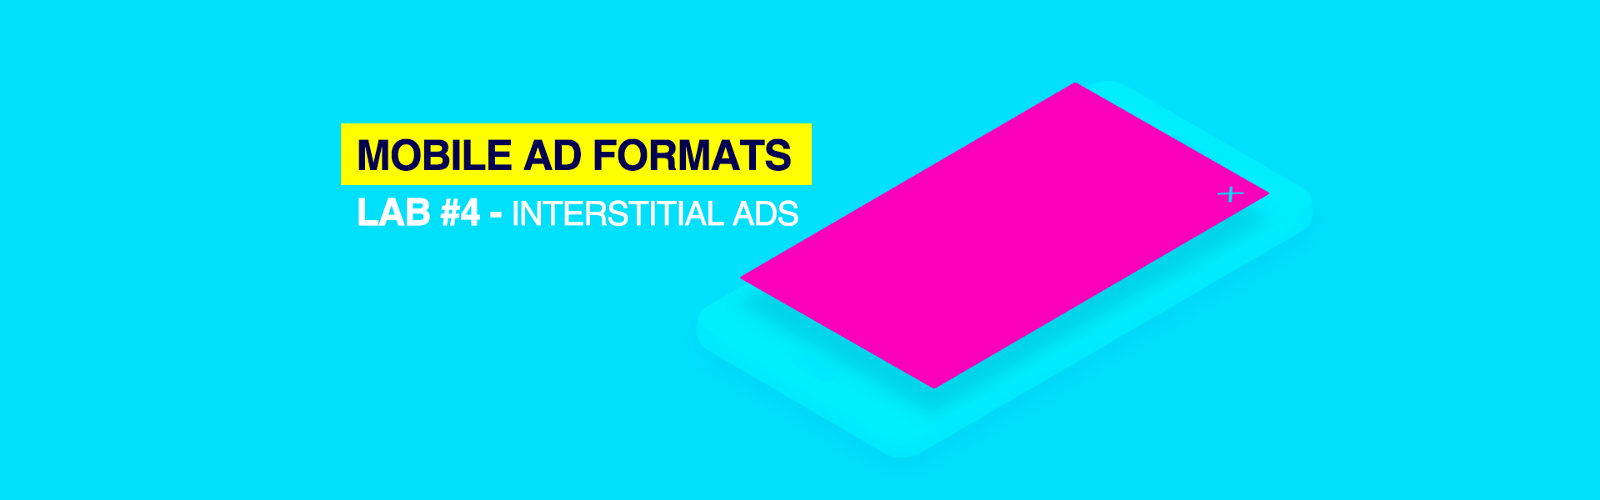 /mobile-ad-formats-lab-4-interstitial-ads-b683142ae4dc feature image